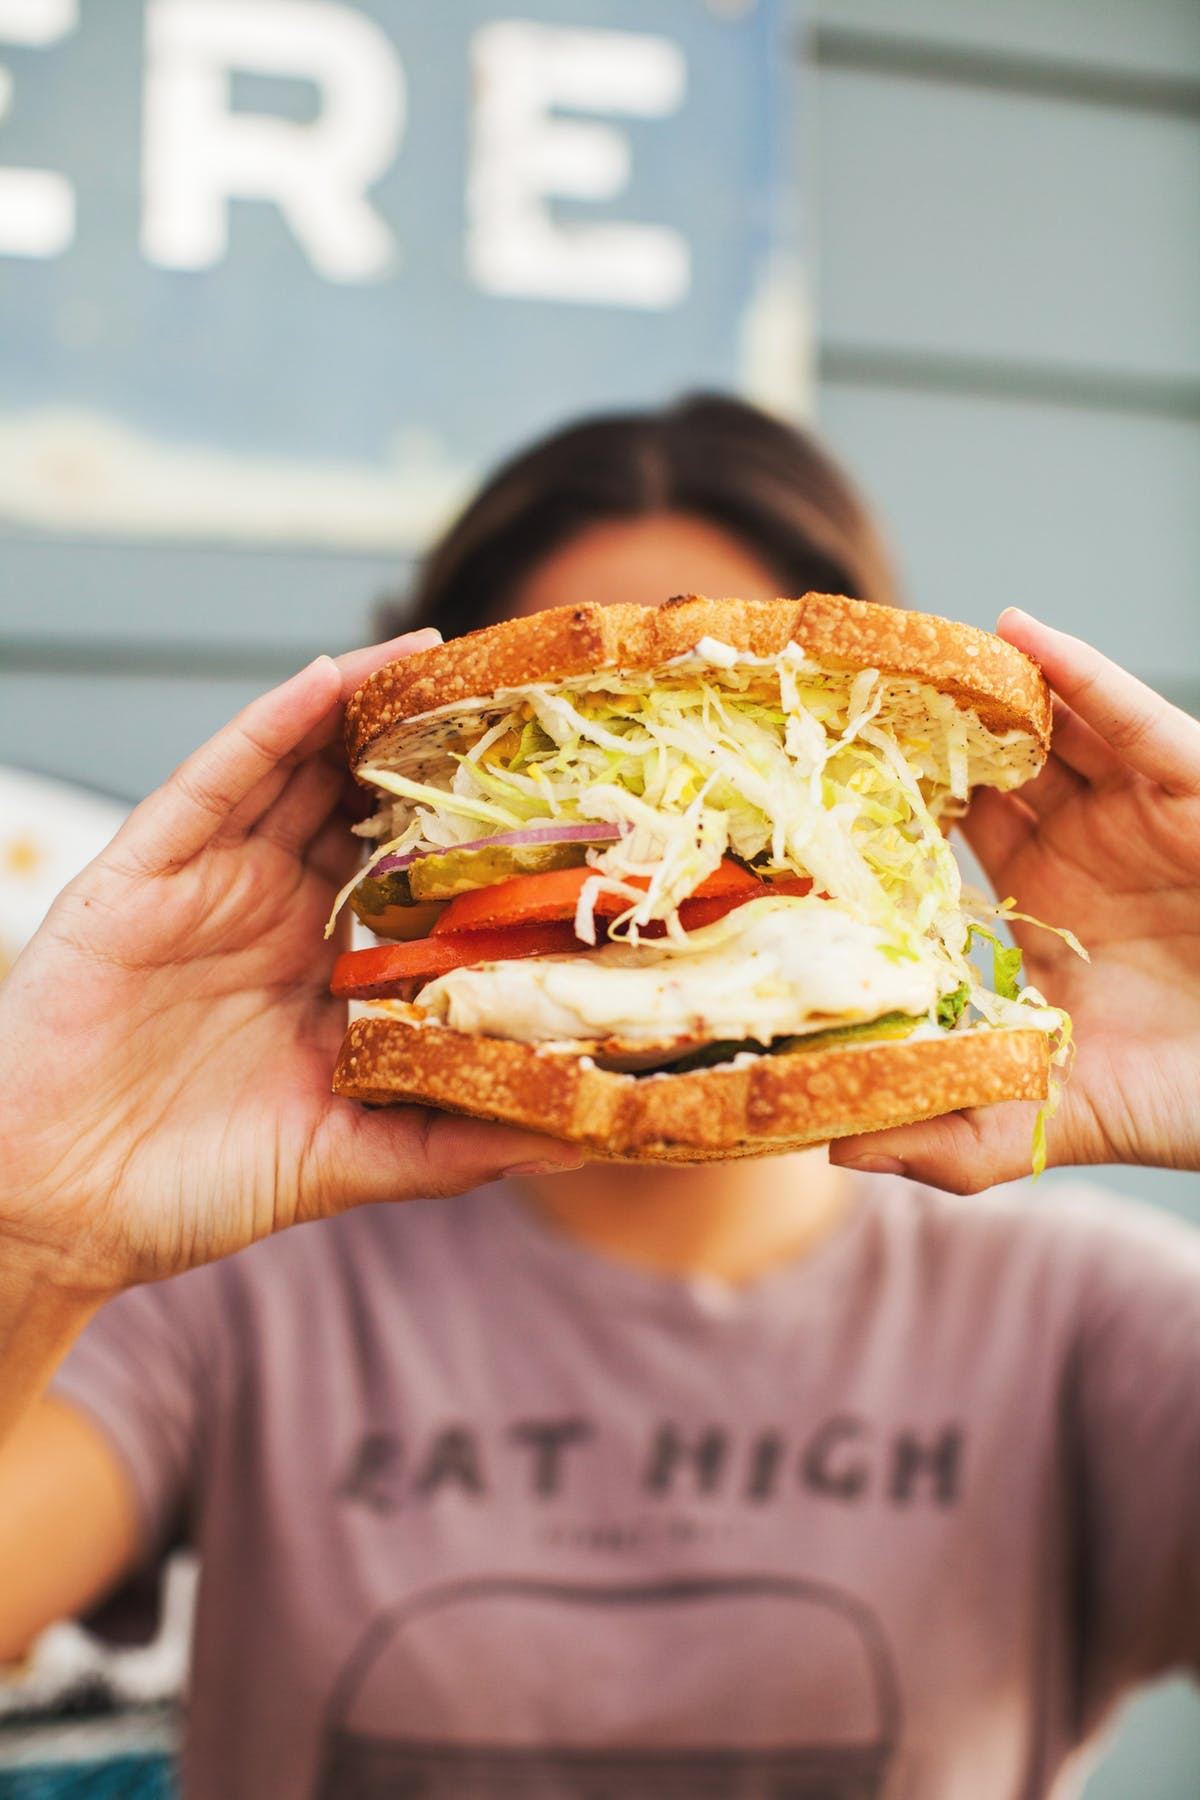 a person holding an enormous sandwich